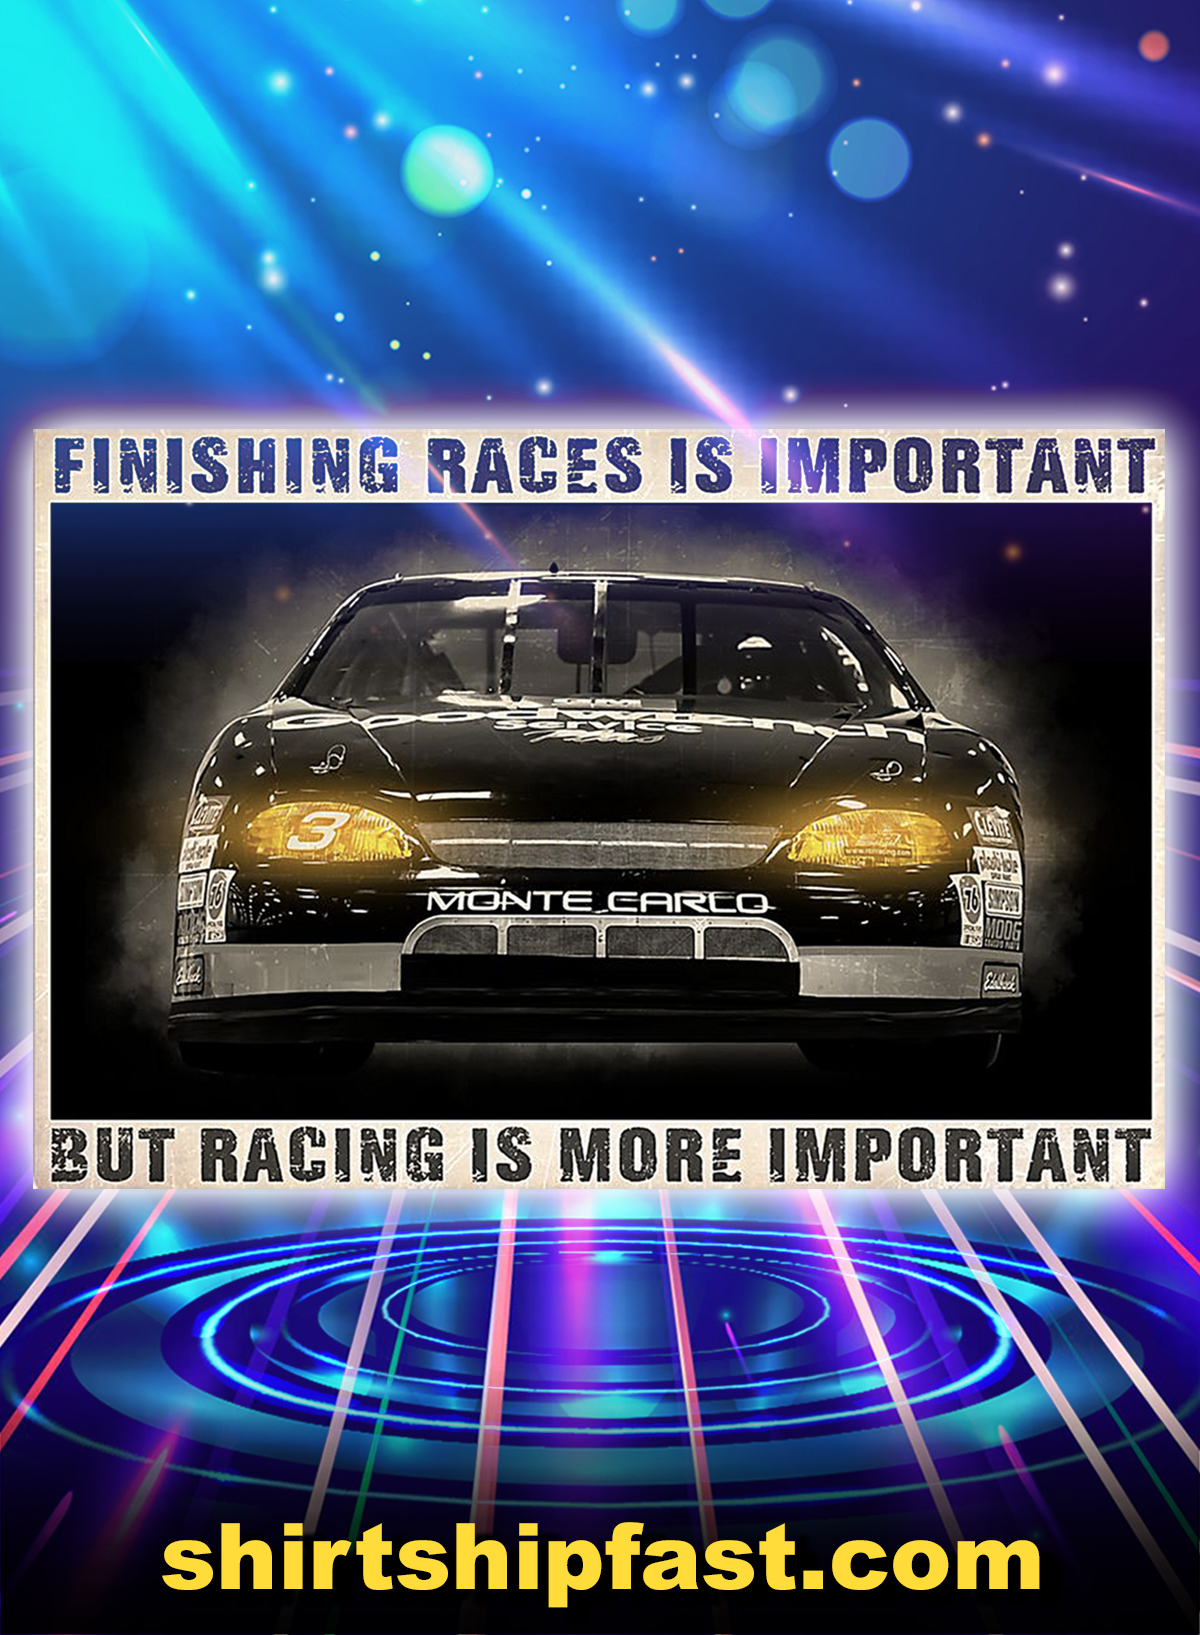 Car finishing races is important but racing is more important poster - A1